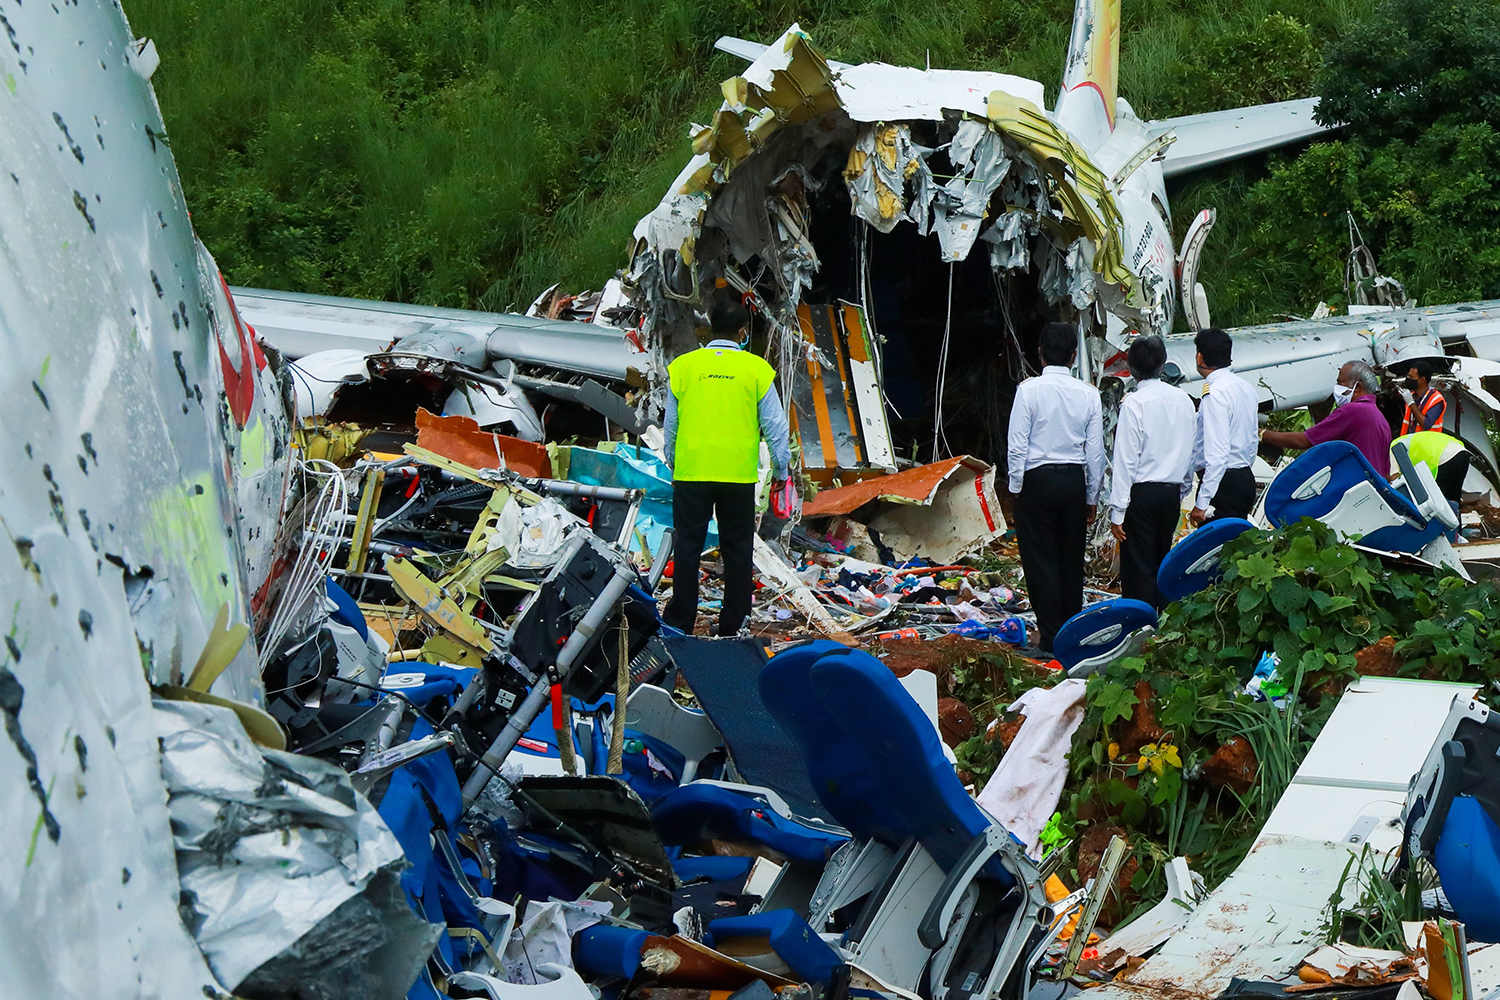 Officials inspect the wreckage of an Air India Express jet at Calicut International Airport in Karipur, India, on Aug. 8. Fierce rain and winds lashed a plane carrying 190 people before it crash-landed and tore in two, killing 18 people. ARUNCHANDRA BOSE/AFP via Getty Images